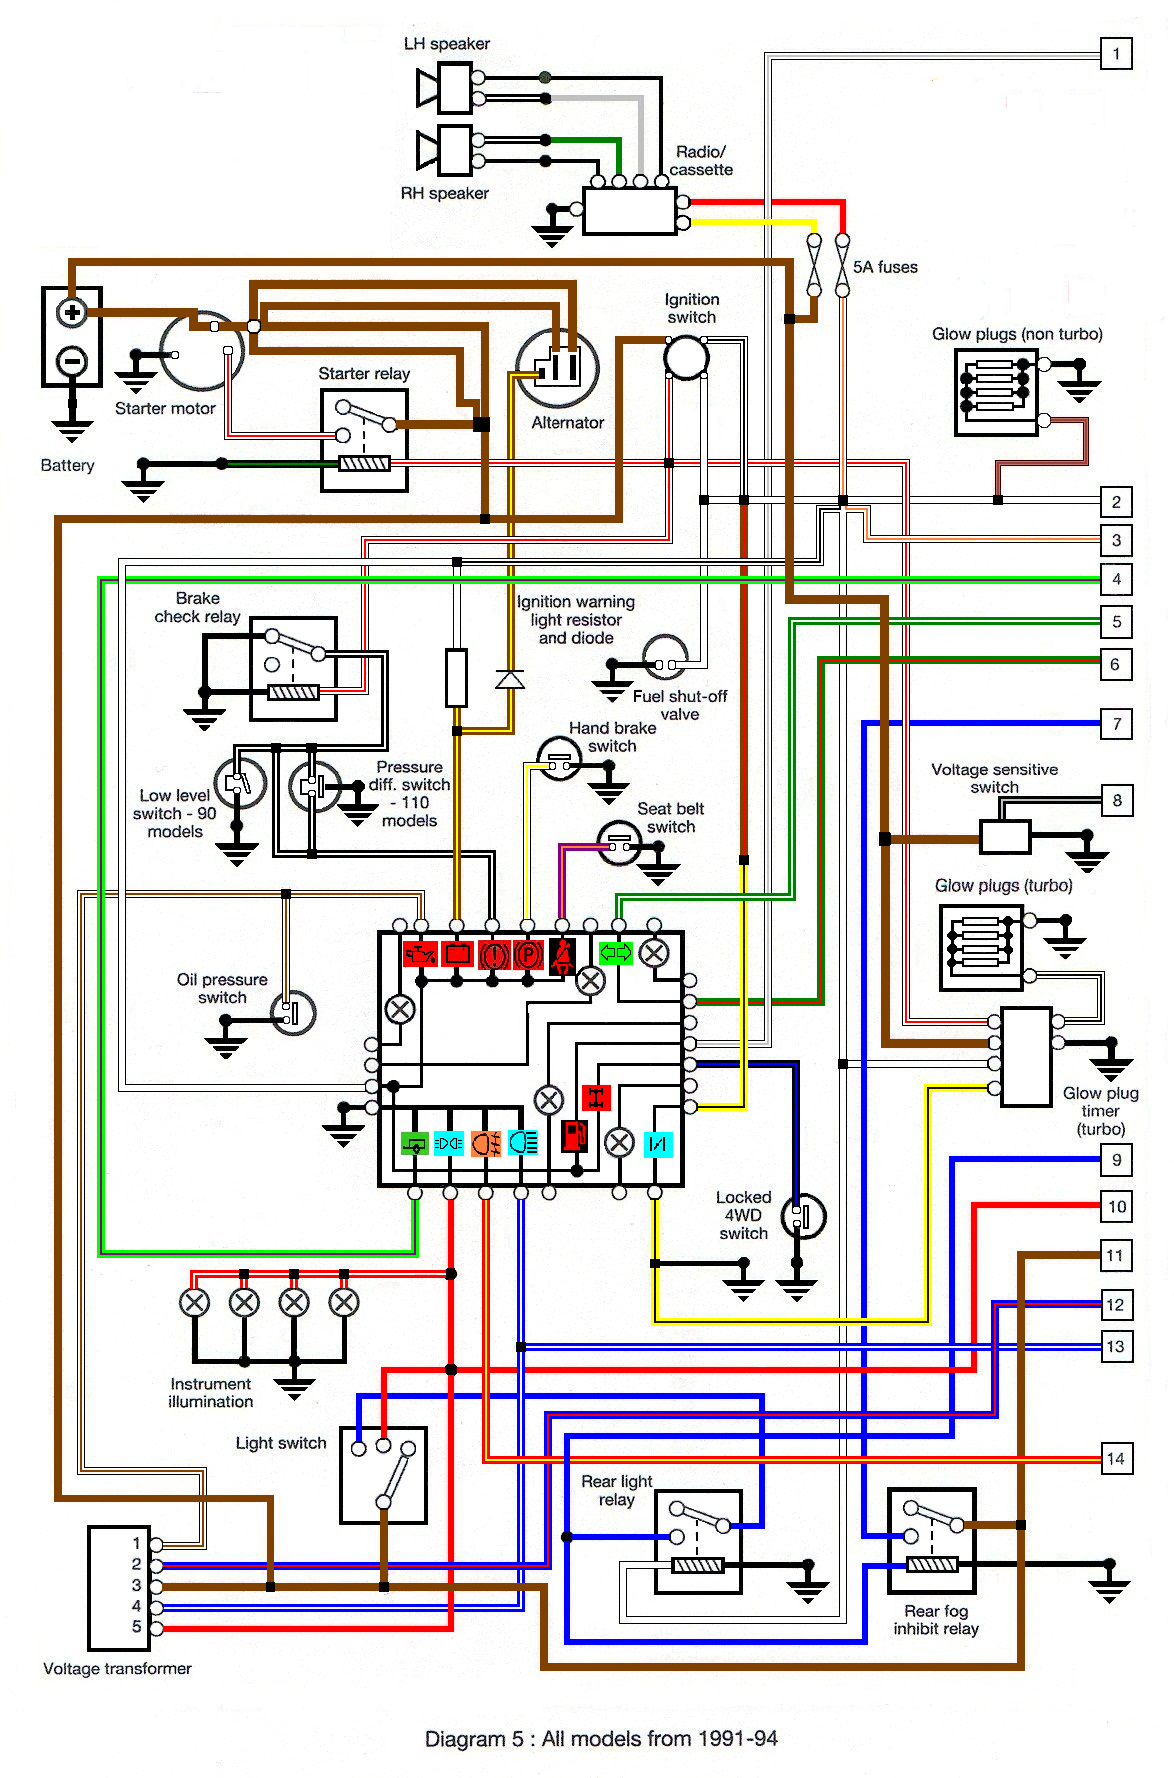 land rover 110 wiring diagram images land rover perentie wiring land rover defender td5 wiring diagram 293